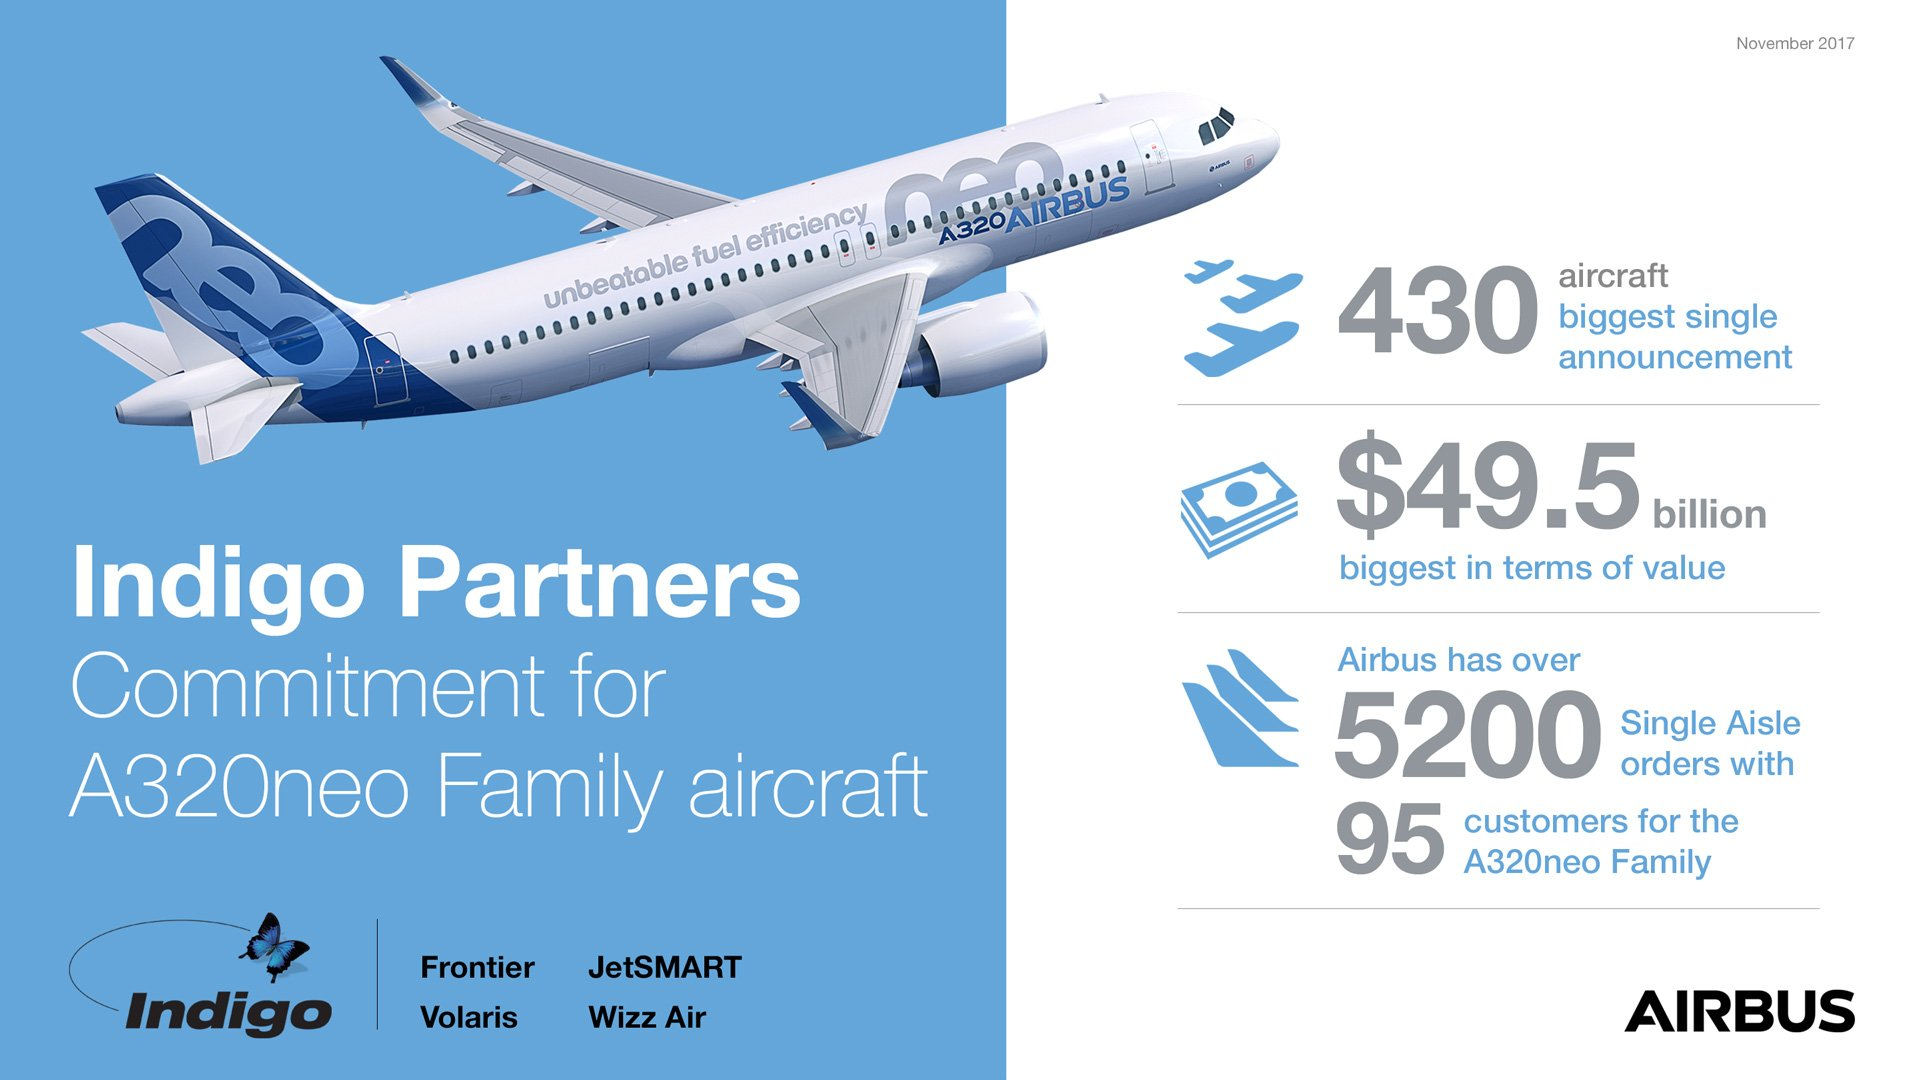 Representing Airbus' largest-ever jetliner acquisition announcement, the four portfolio airlines of Indigo Partners have signed a Memorandum of Understanding that will double its existing A320neo Family fleet